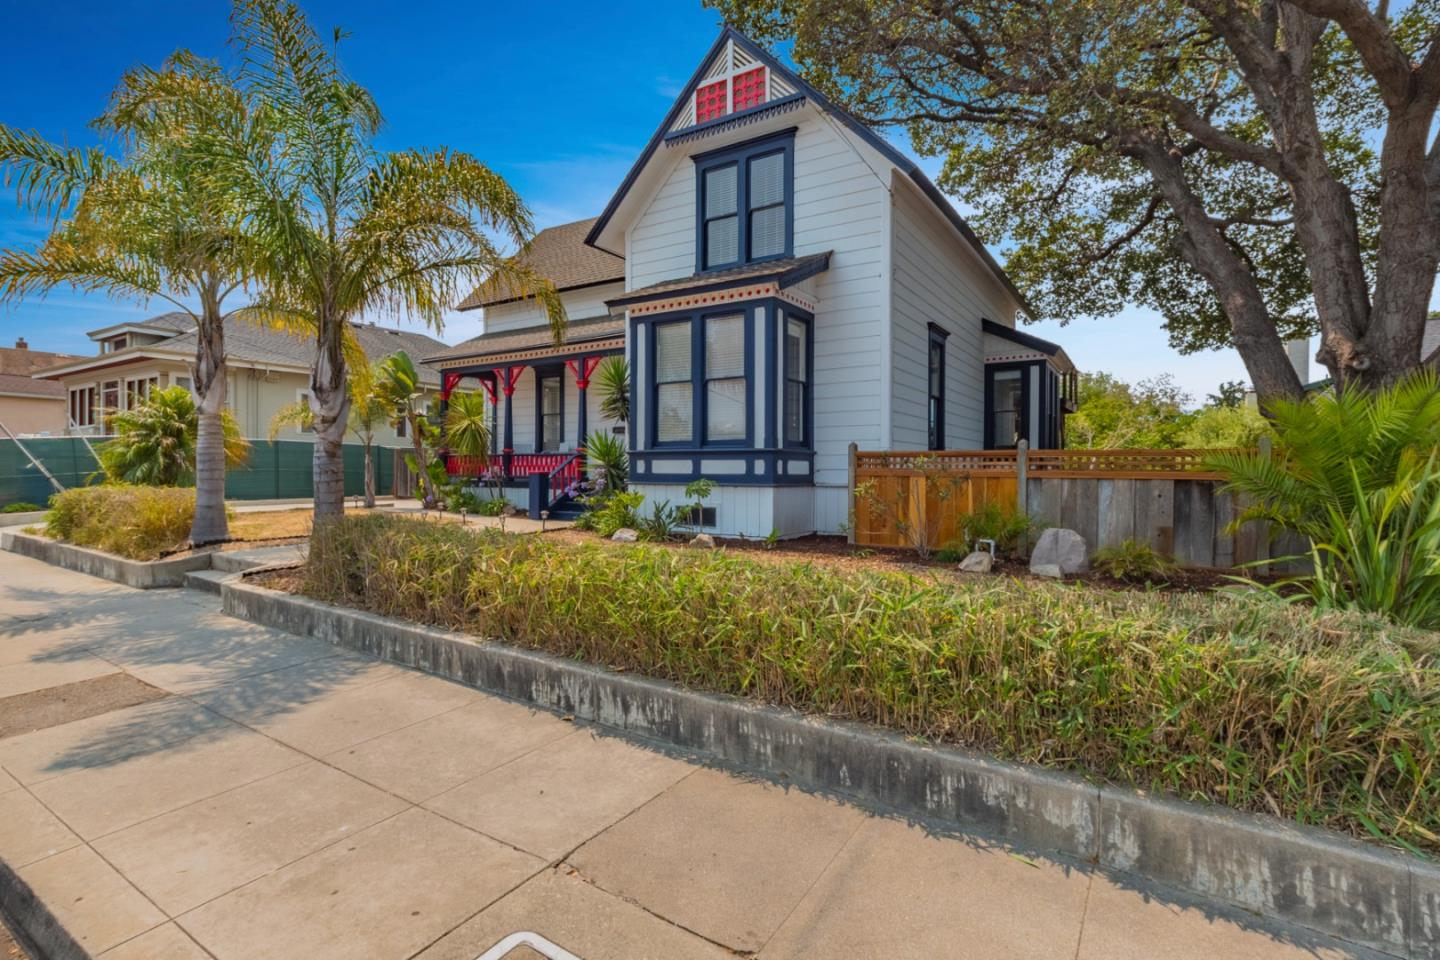 This beautiful Victorian is a legal triplex and centered in the highly desirable Seabright Beach neighborhood. With 3 kitchens, 3 bathrooms, 4 bedrooms, 3 living spaces and a very large lot, you have endless options for making the most of this amazing property. Bring your entire family together for a barbecue on the huge deck, then retreat to a private unit to enjoy a book after a long day at the beach. Or rent out a unit or two and keep one available for your family to use whenever you want! Now thats a savvy way to vacay! Develop the expansive lot into additional units to accommodate a larger family or gain more rental income. Walk or bike to local favorite hotspots such as Verve Coffee, Java Junction, La Posta, Tramonti, Lindas Seabreeze Café, and the Arana Gulch trail, which provides lovely views and easy access to the Santa Cruz Harbor and, of course, Seabright Beach!